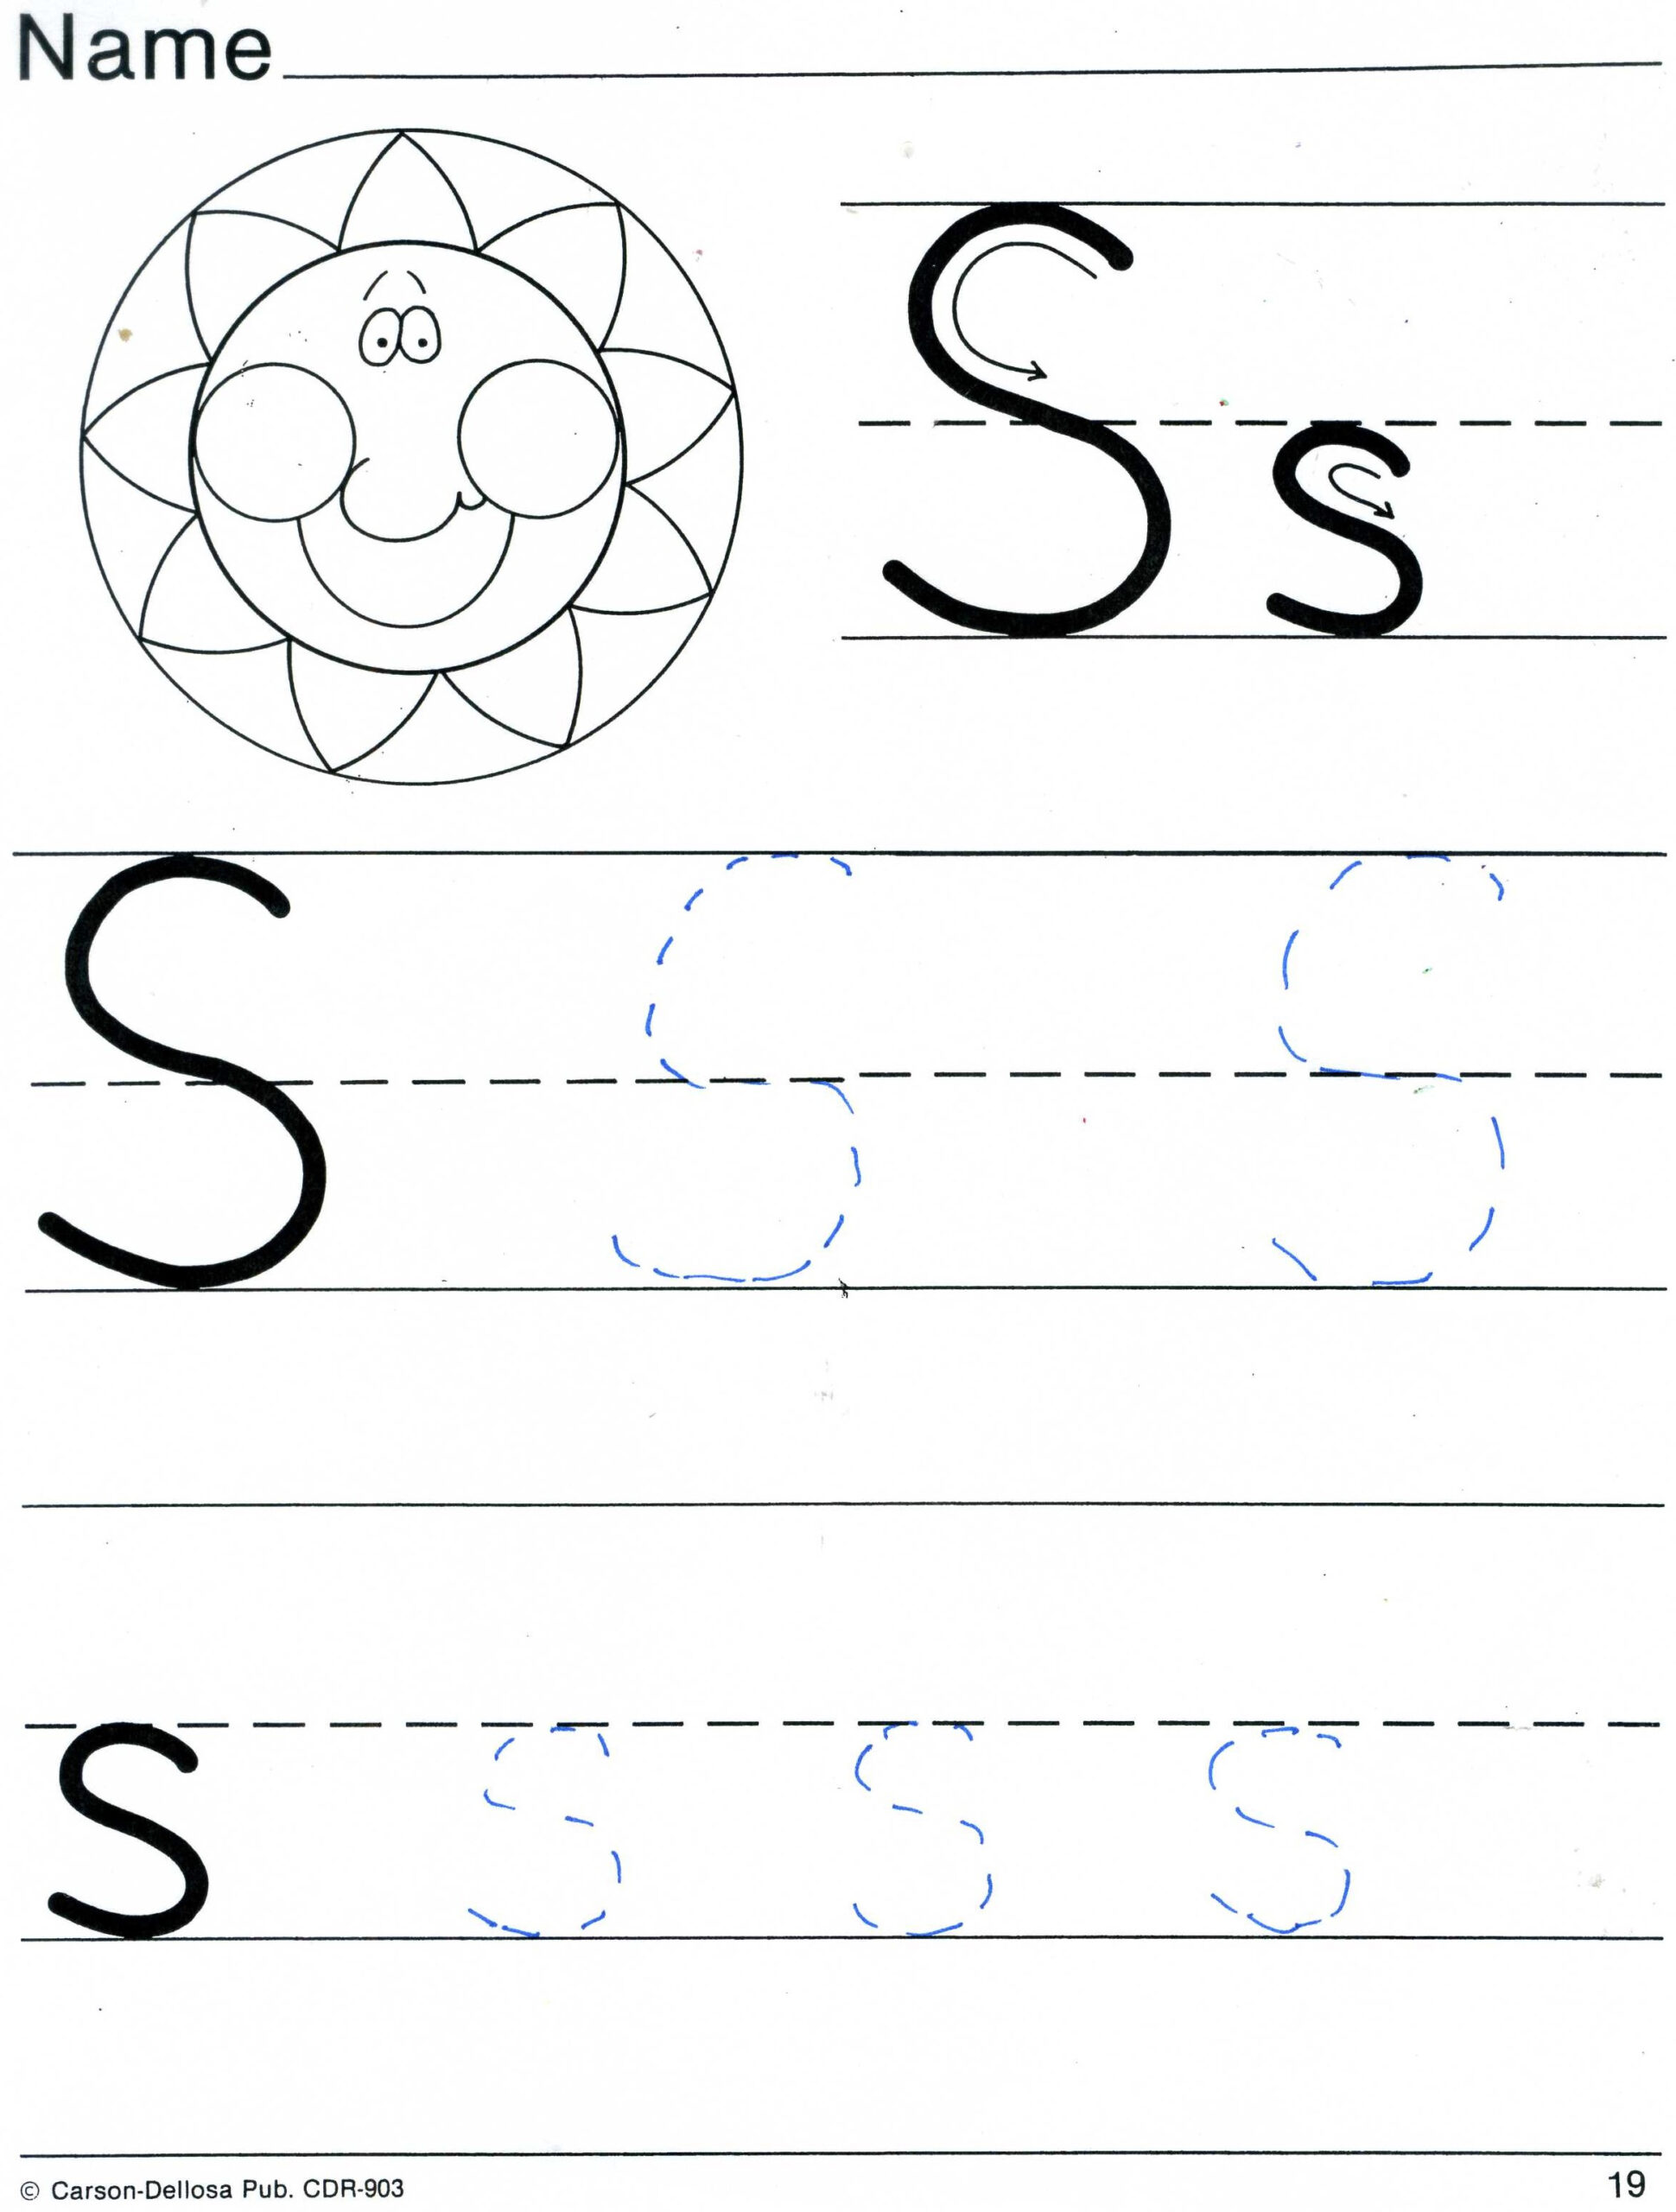 Practice Sheets For Parents pertaining to Letter P Tracing Paper